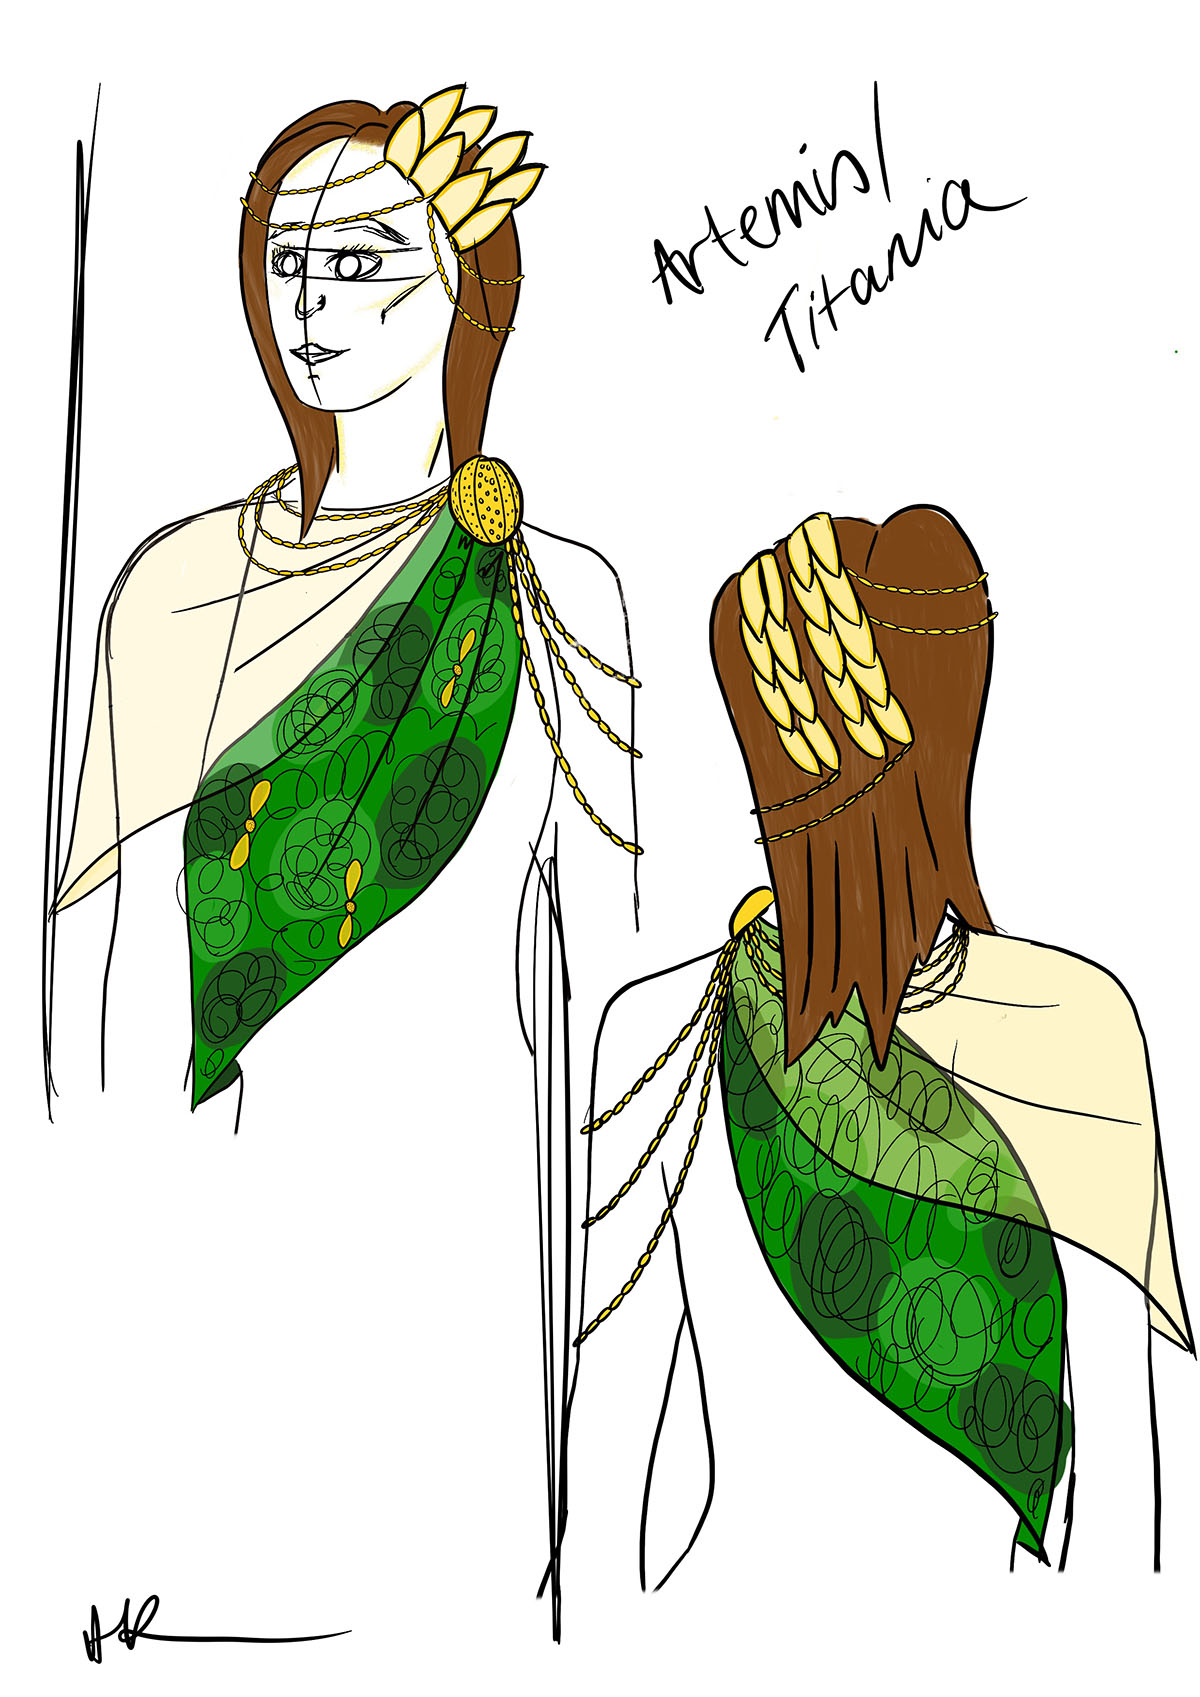 Design for Artemis in my own adaptation of Shakespeare's A Midsummer Night's Dream